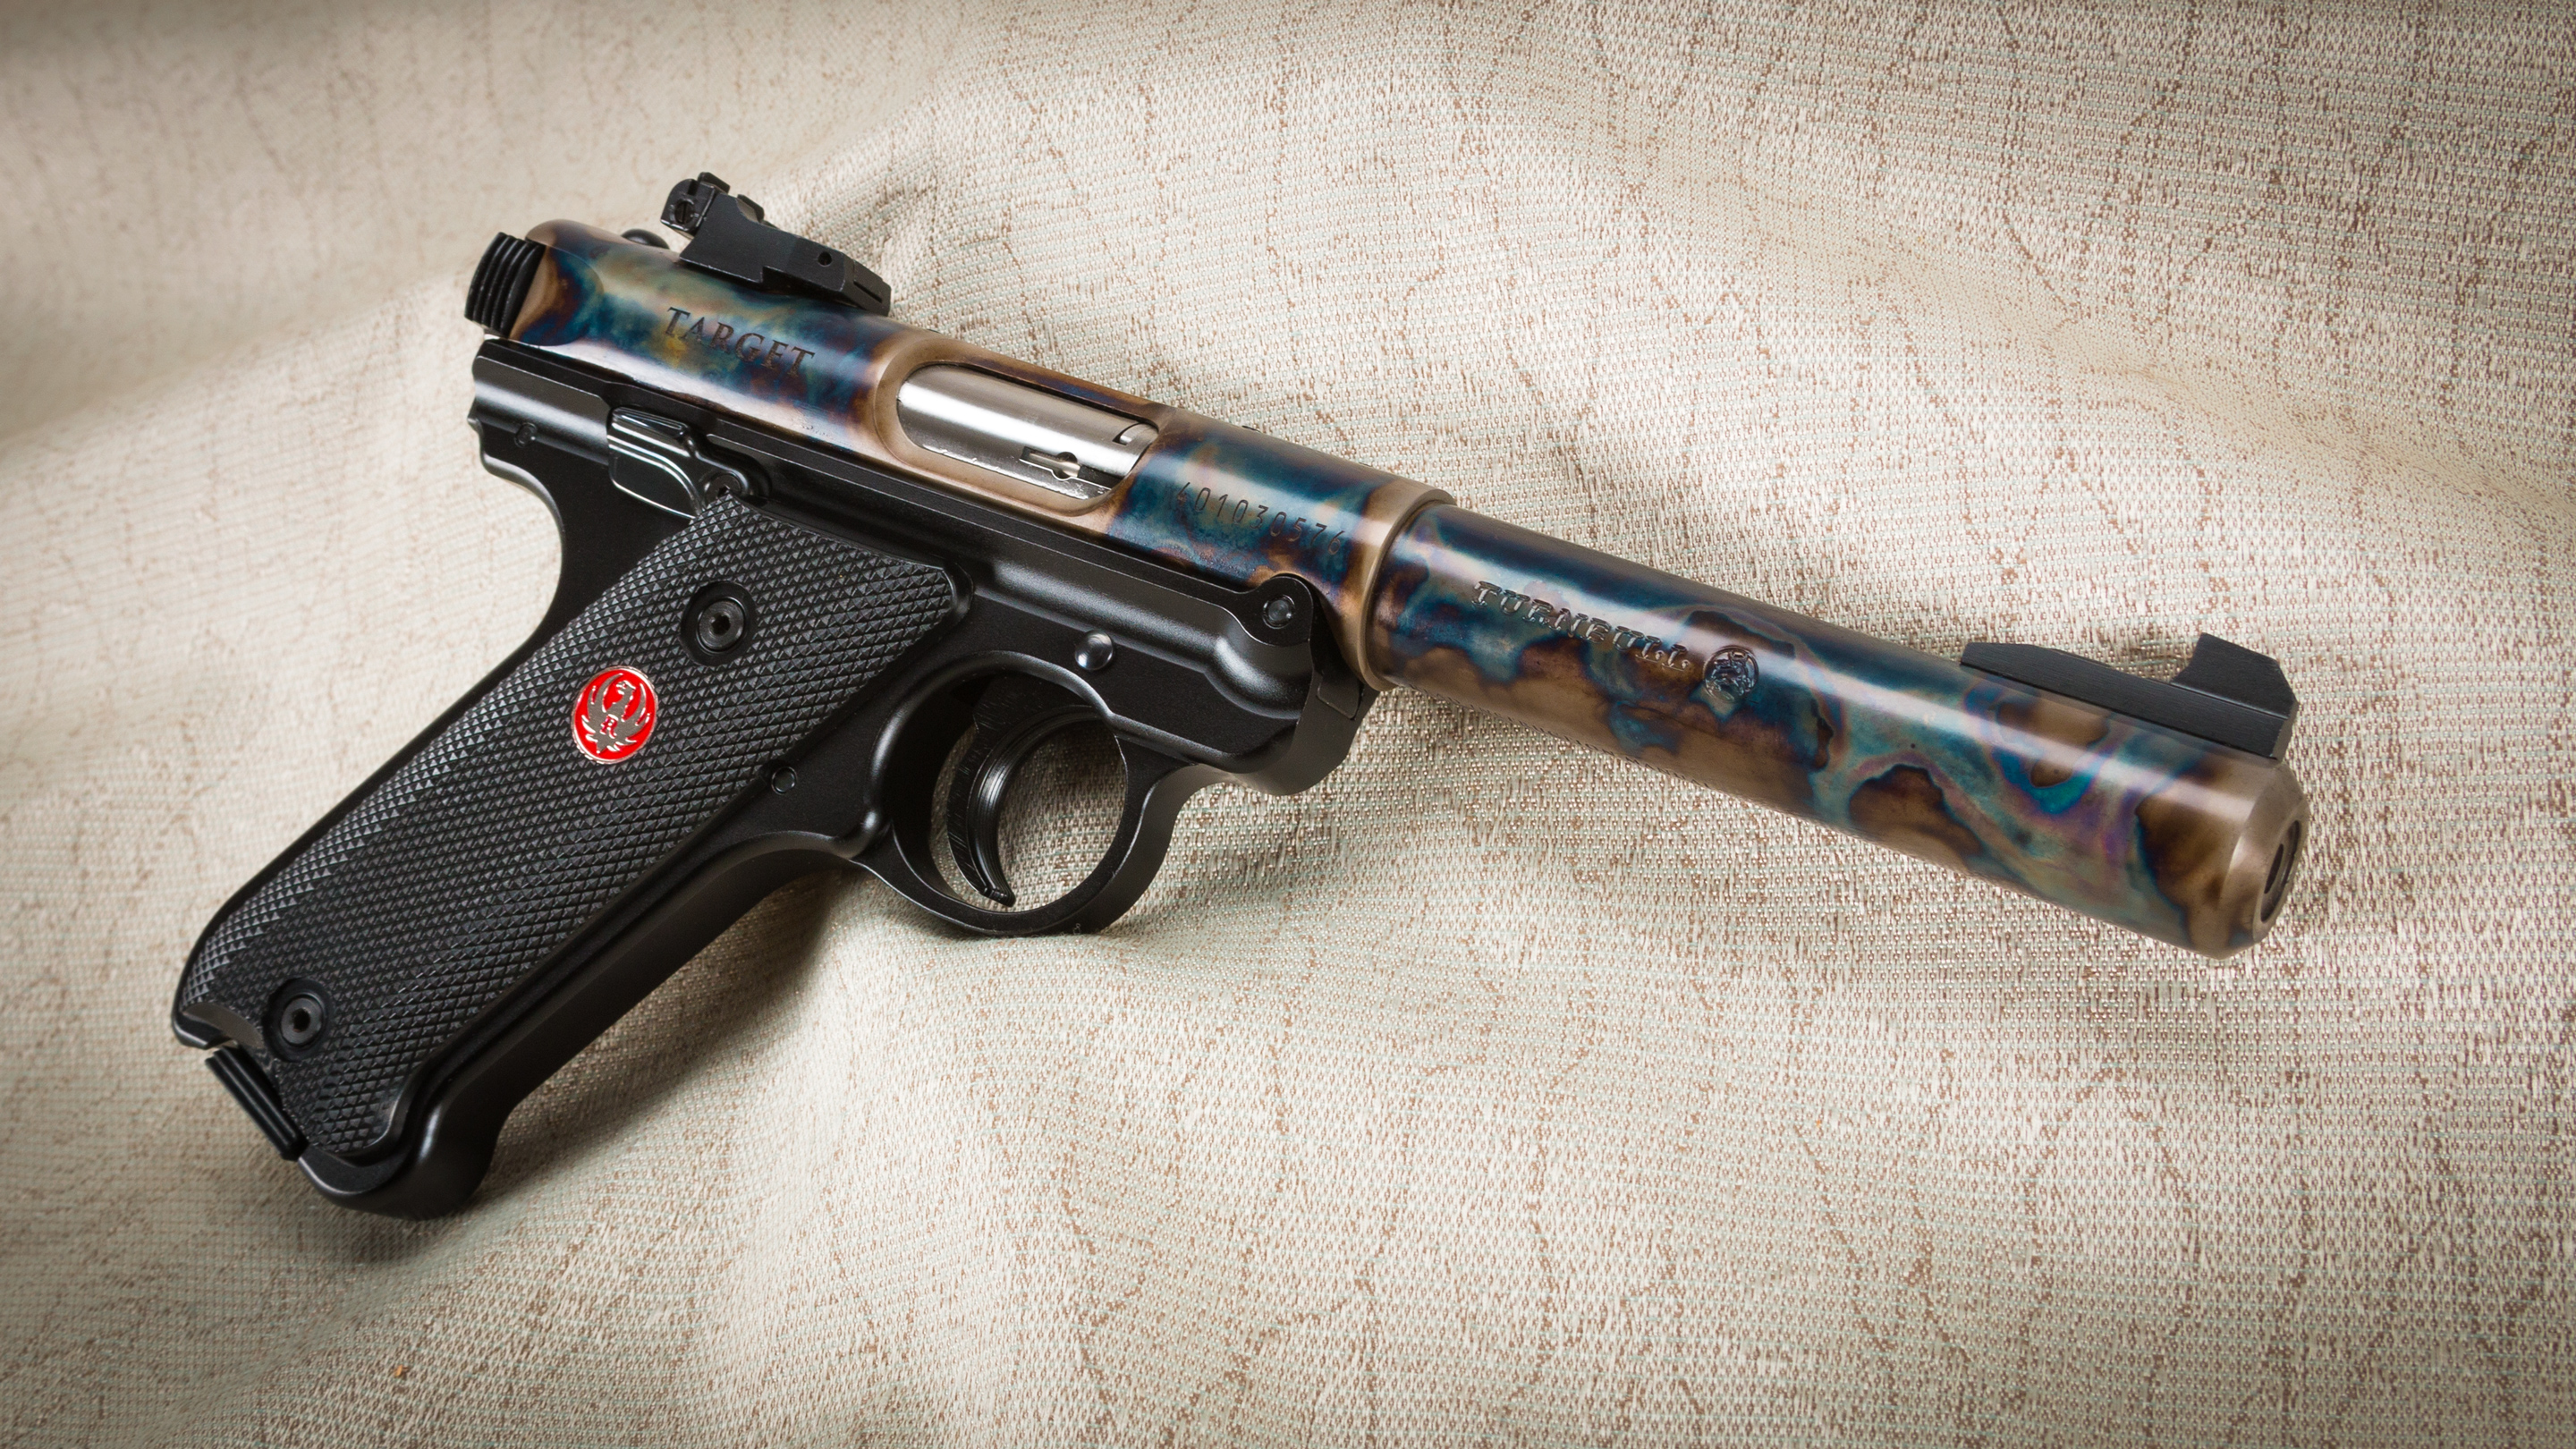 Turnbull Finished Ruger Mark IV - Made to Order